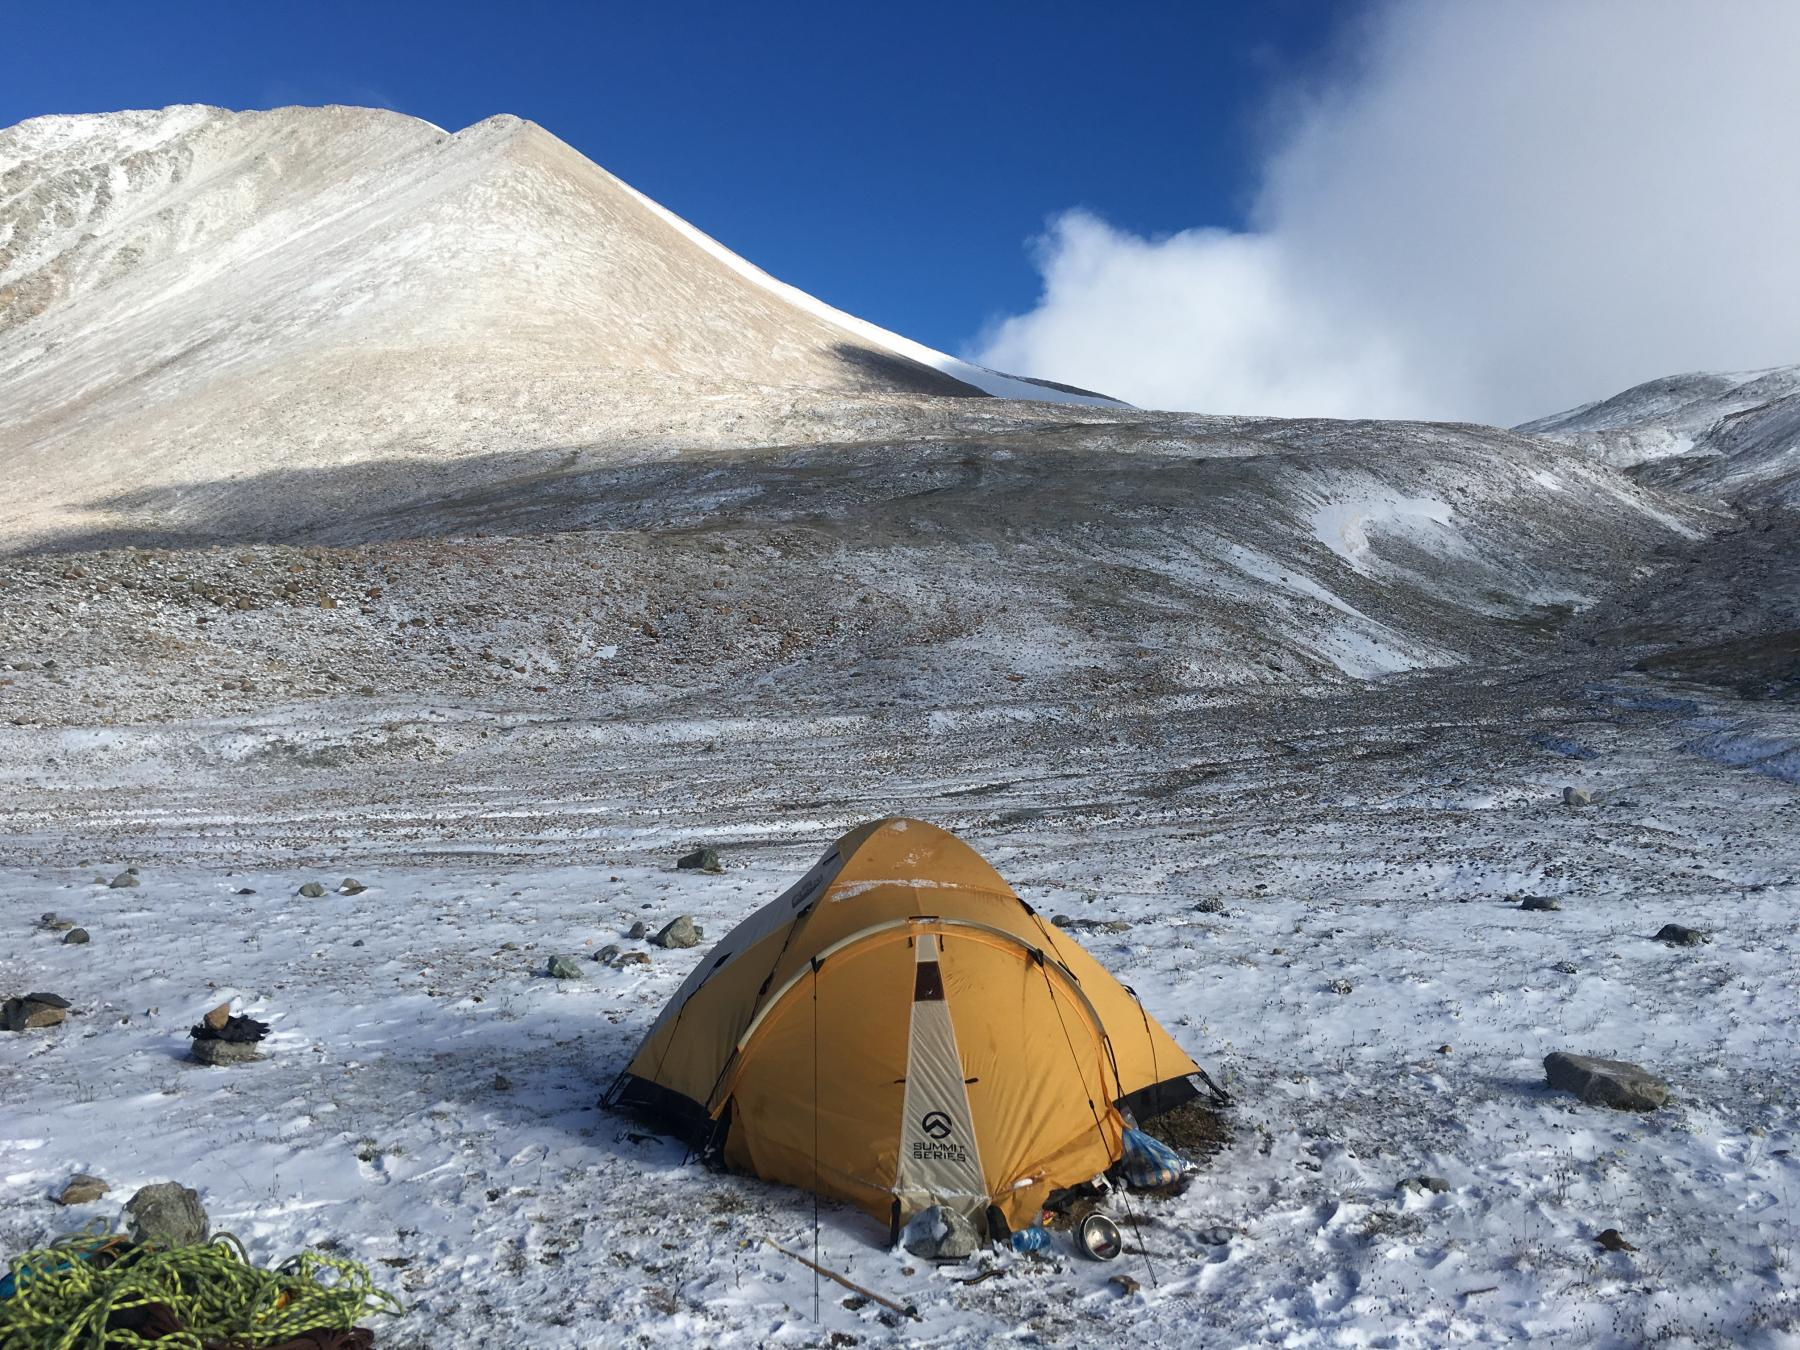 Altai Mountain Range - Base Camp and Double Peak Summit starting at Altai Mountains, Altai, Bayan-Ulgii, Mongolia